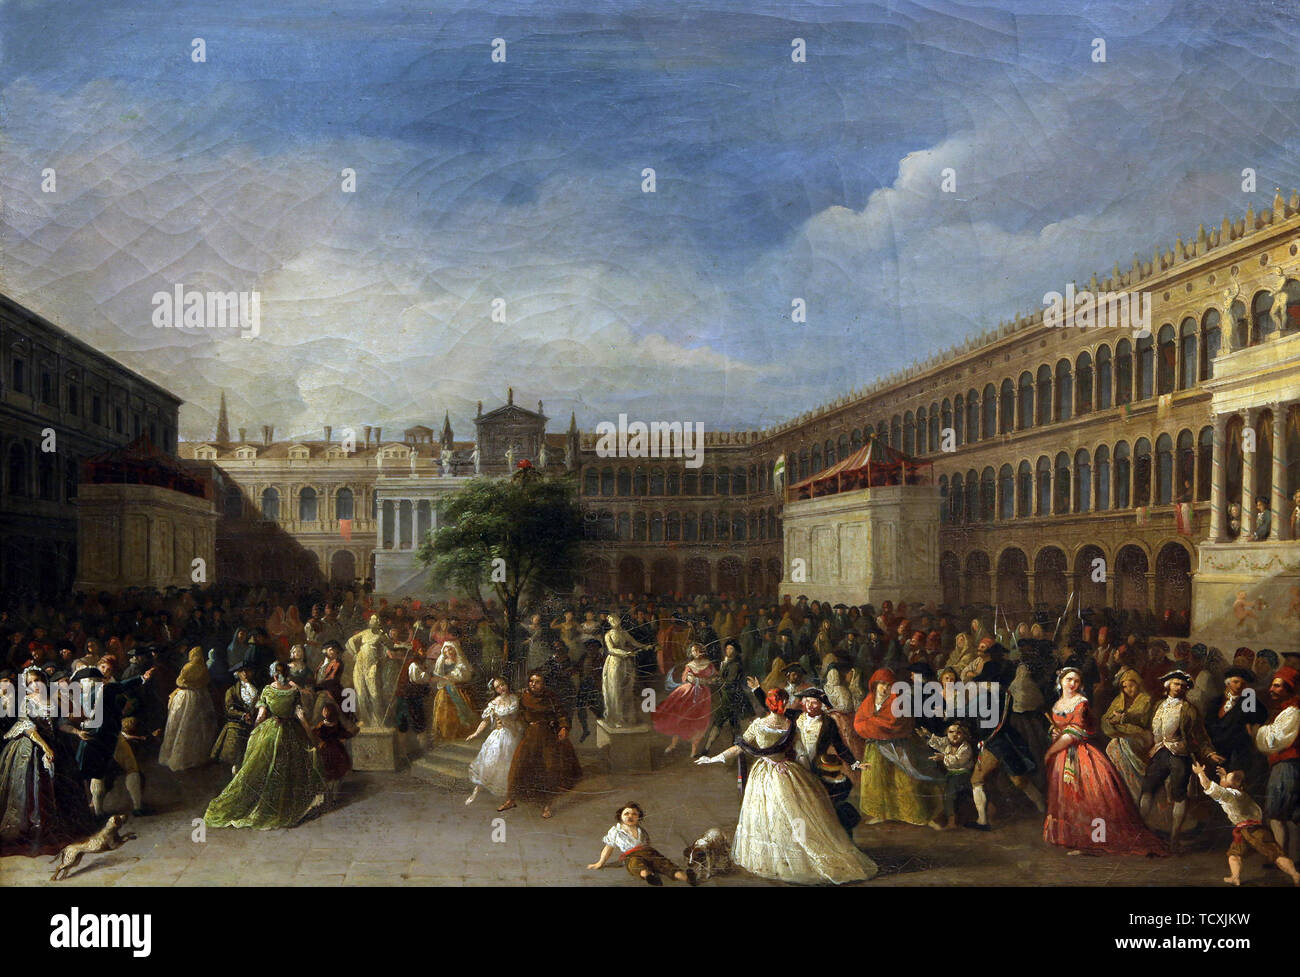 The Tree of Liberty erected in the Piazza San Marco, 4 June 1797, 1797. Found in the Collection of Museo Correr, Venice. - Stock Image